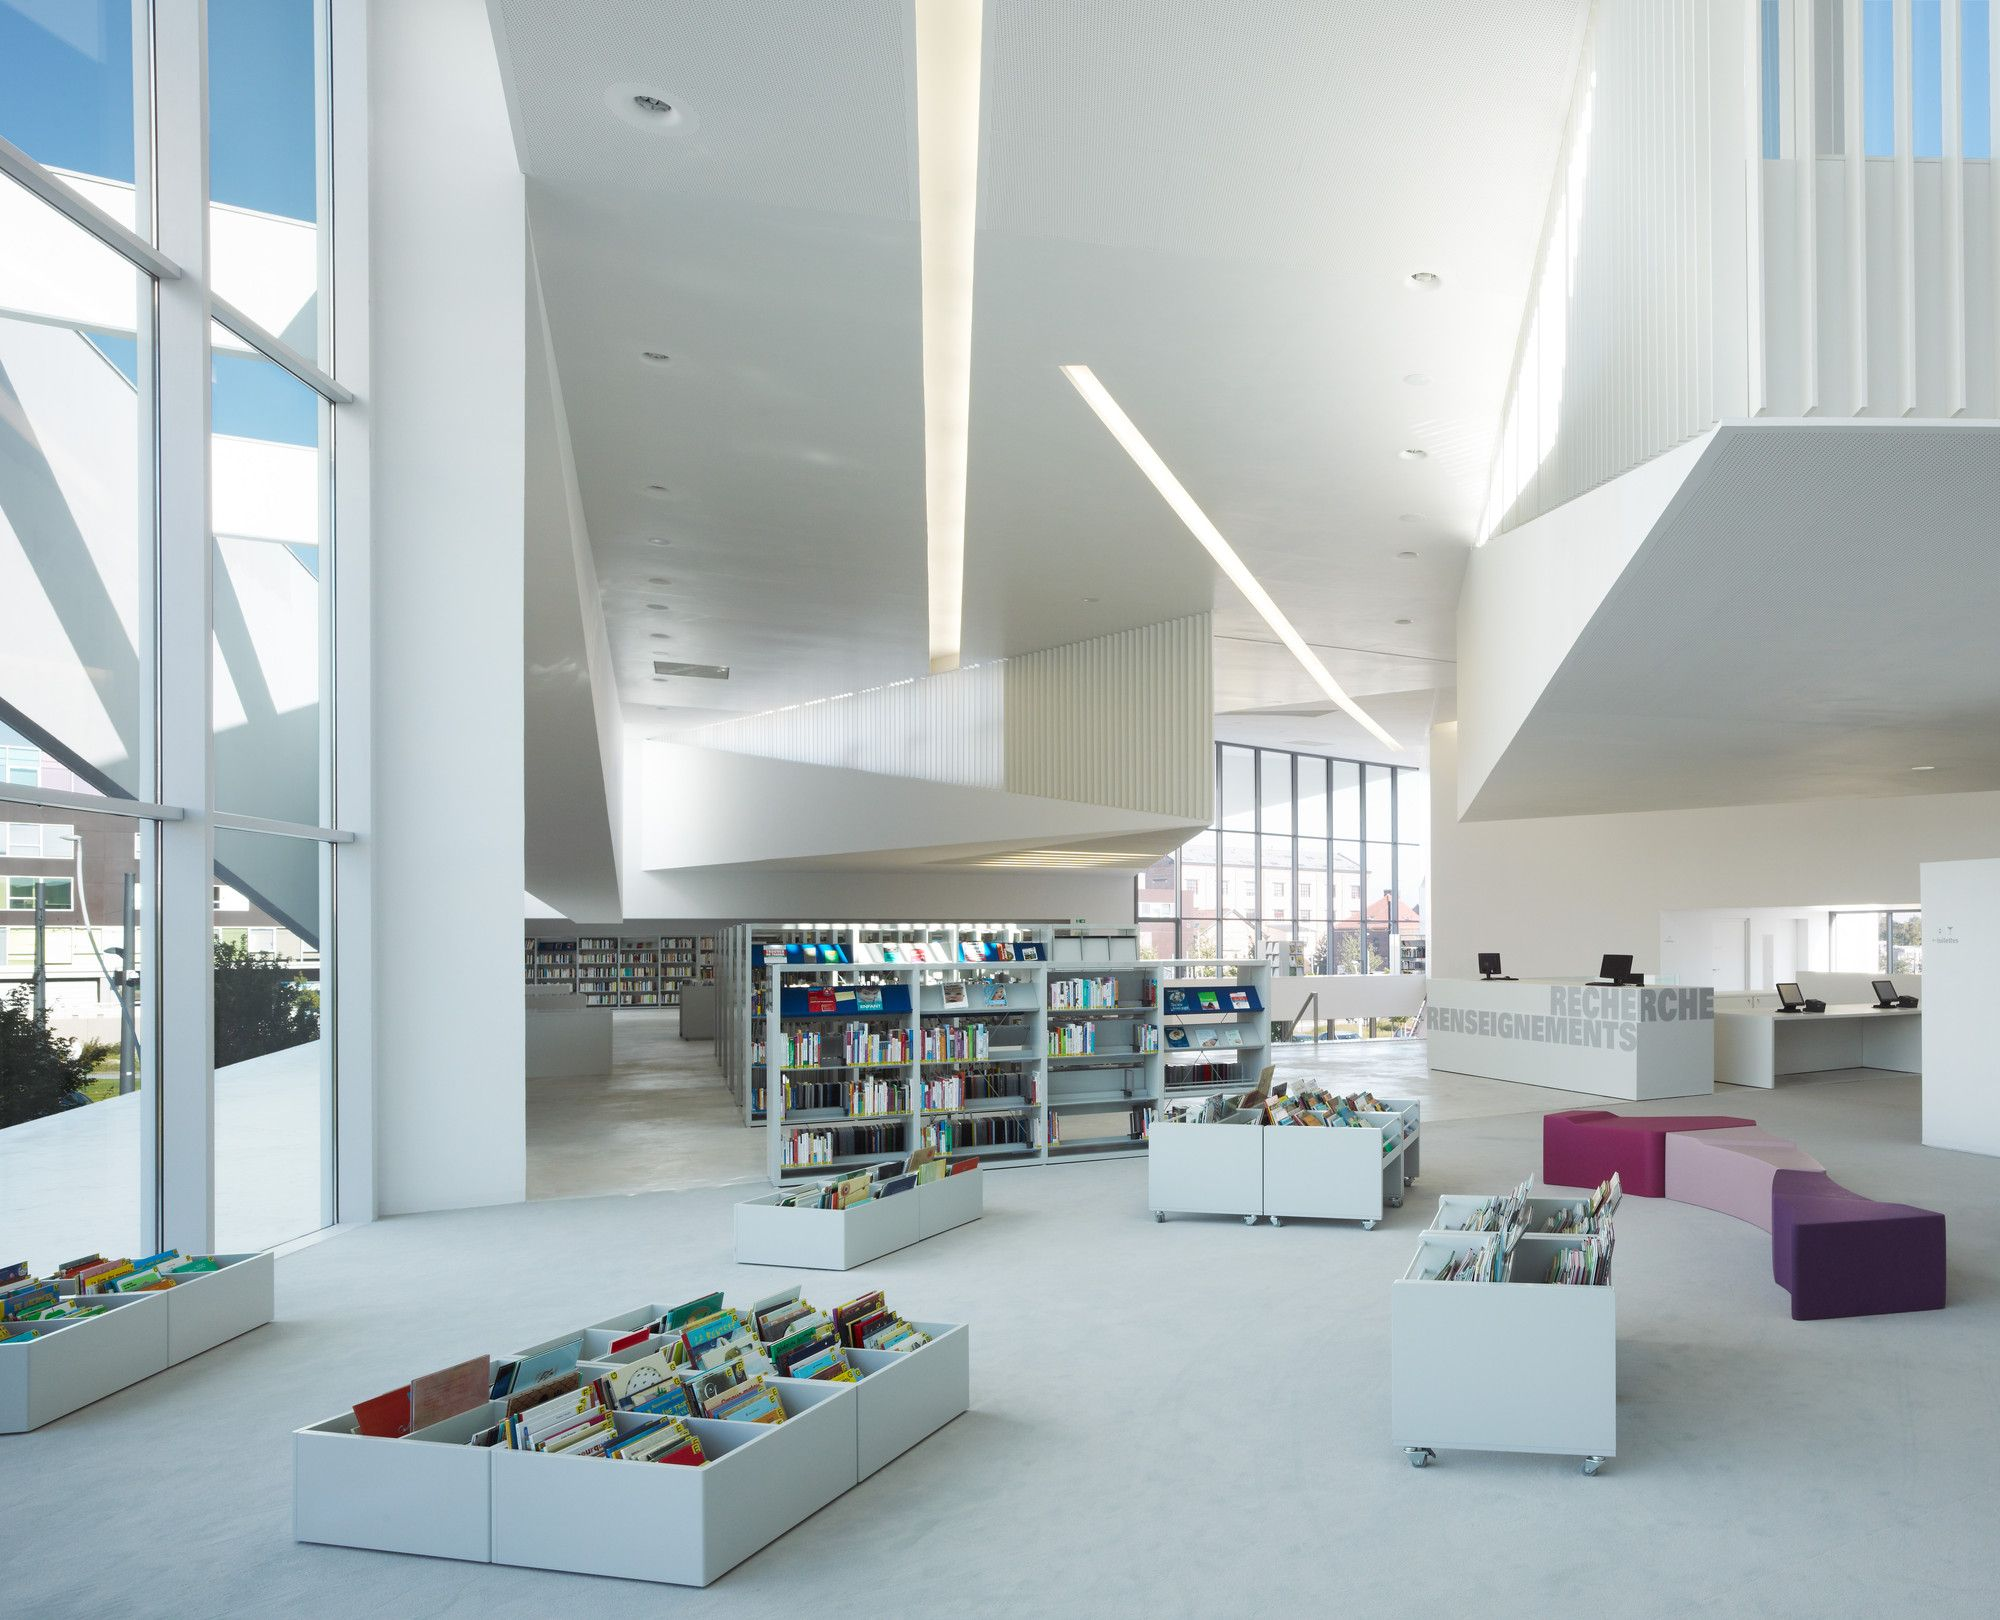 Gallery - Library in Anzin / Dominique Coulon & Associés - 17